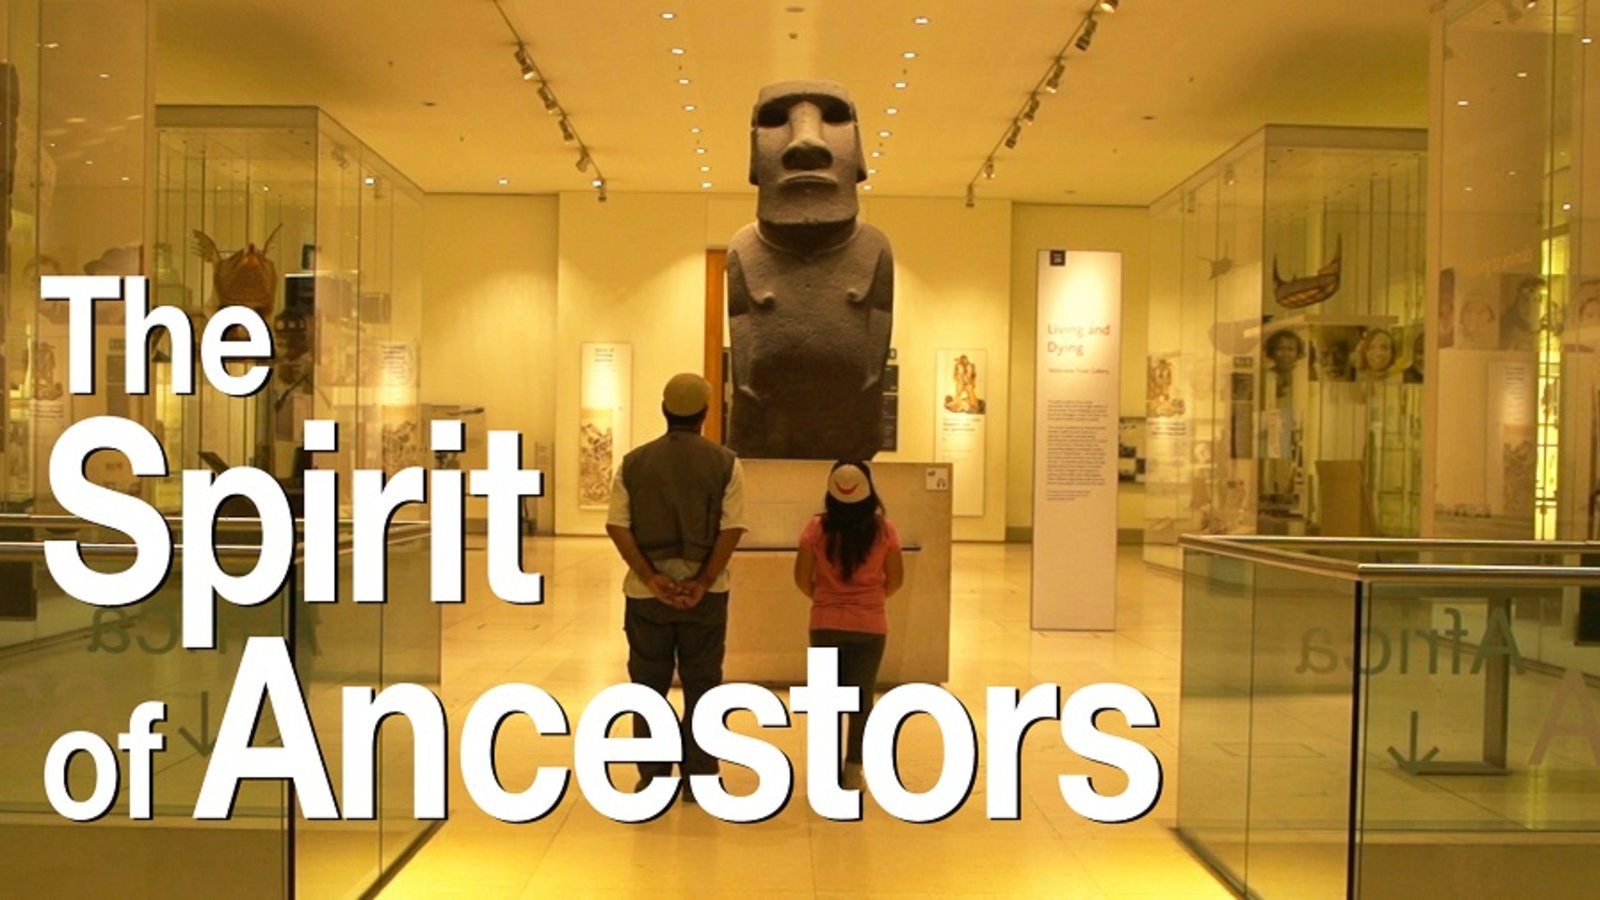 The Spirit of the Ancestors - Journey to Bring Home a Stolen Artifact